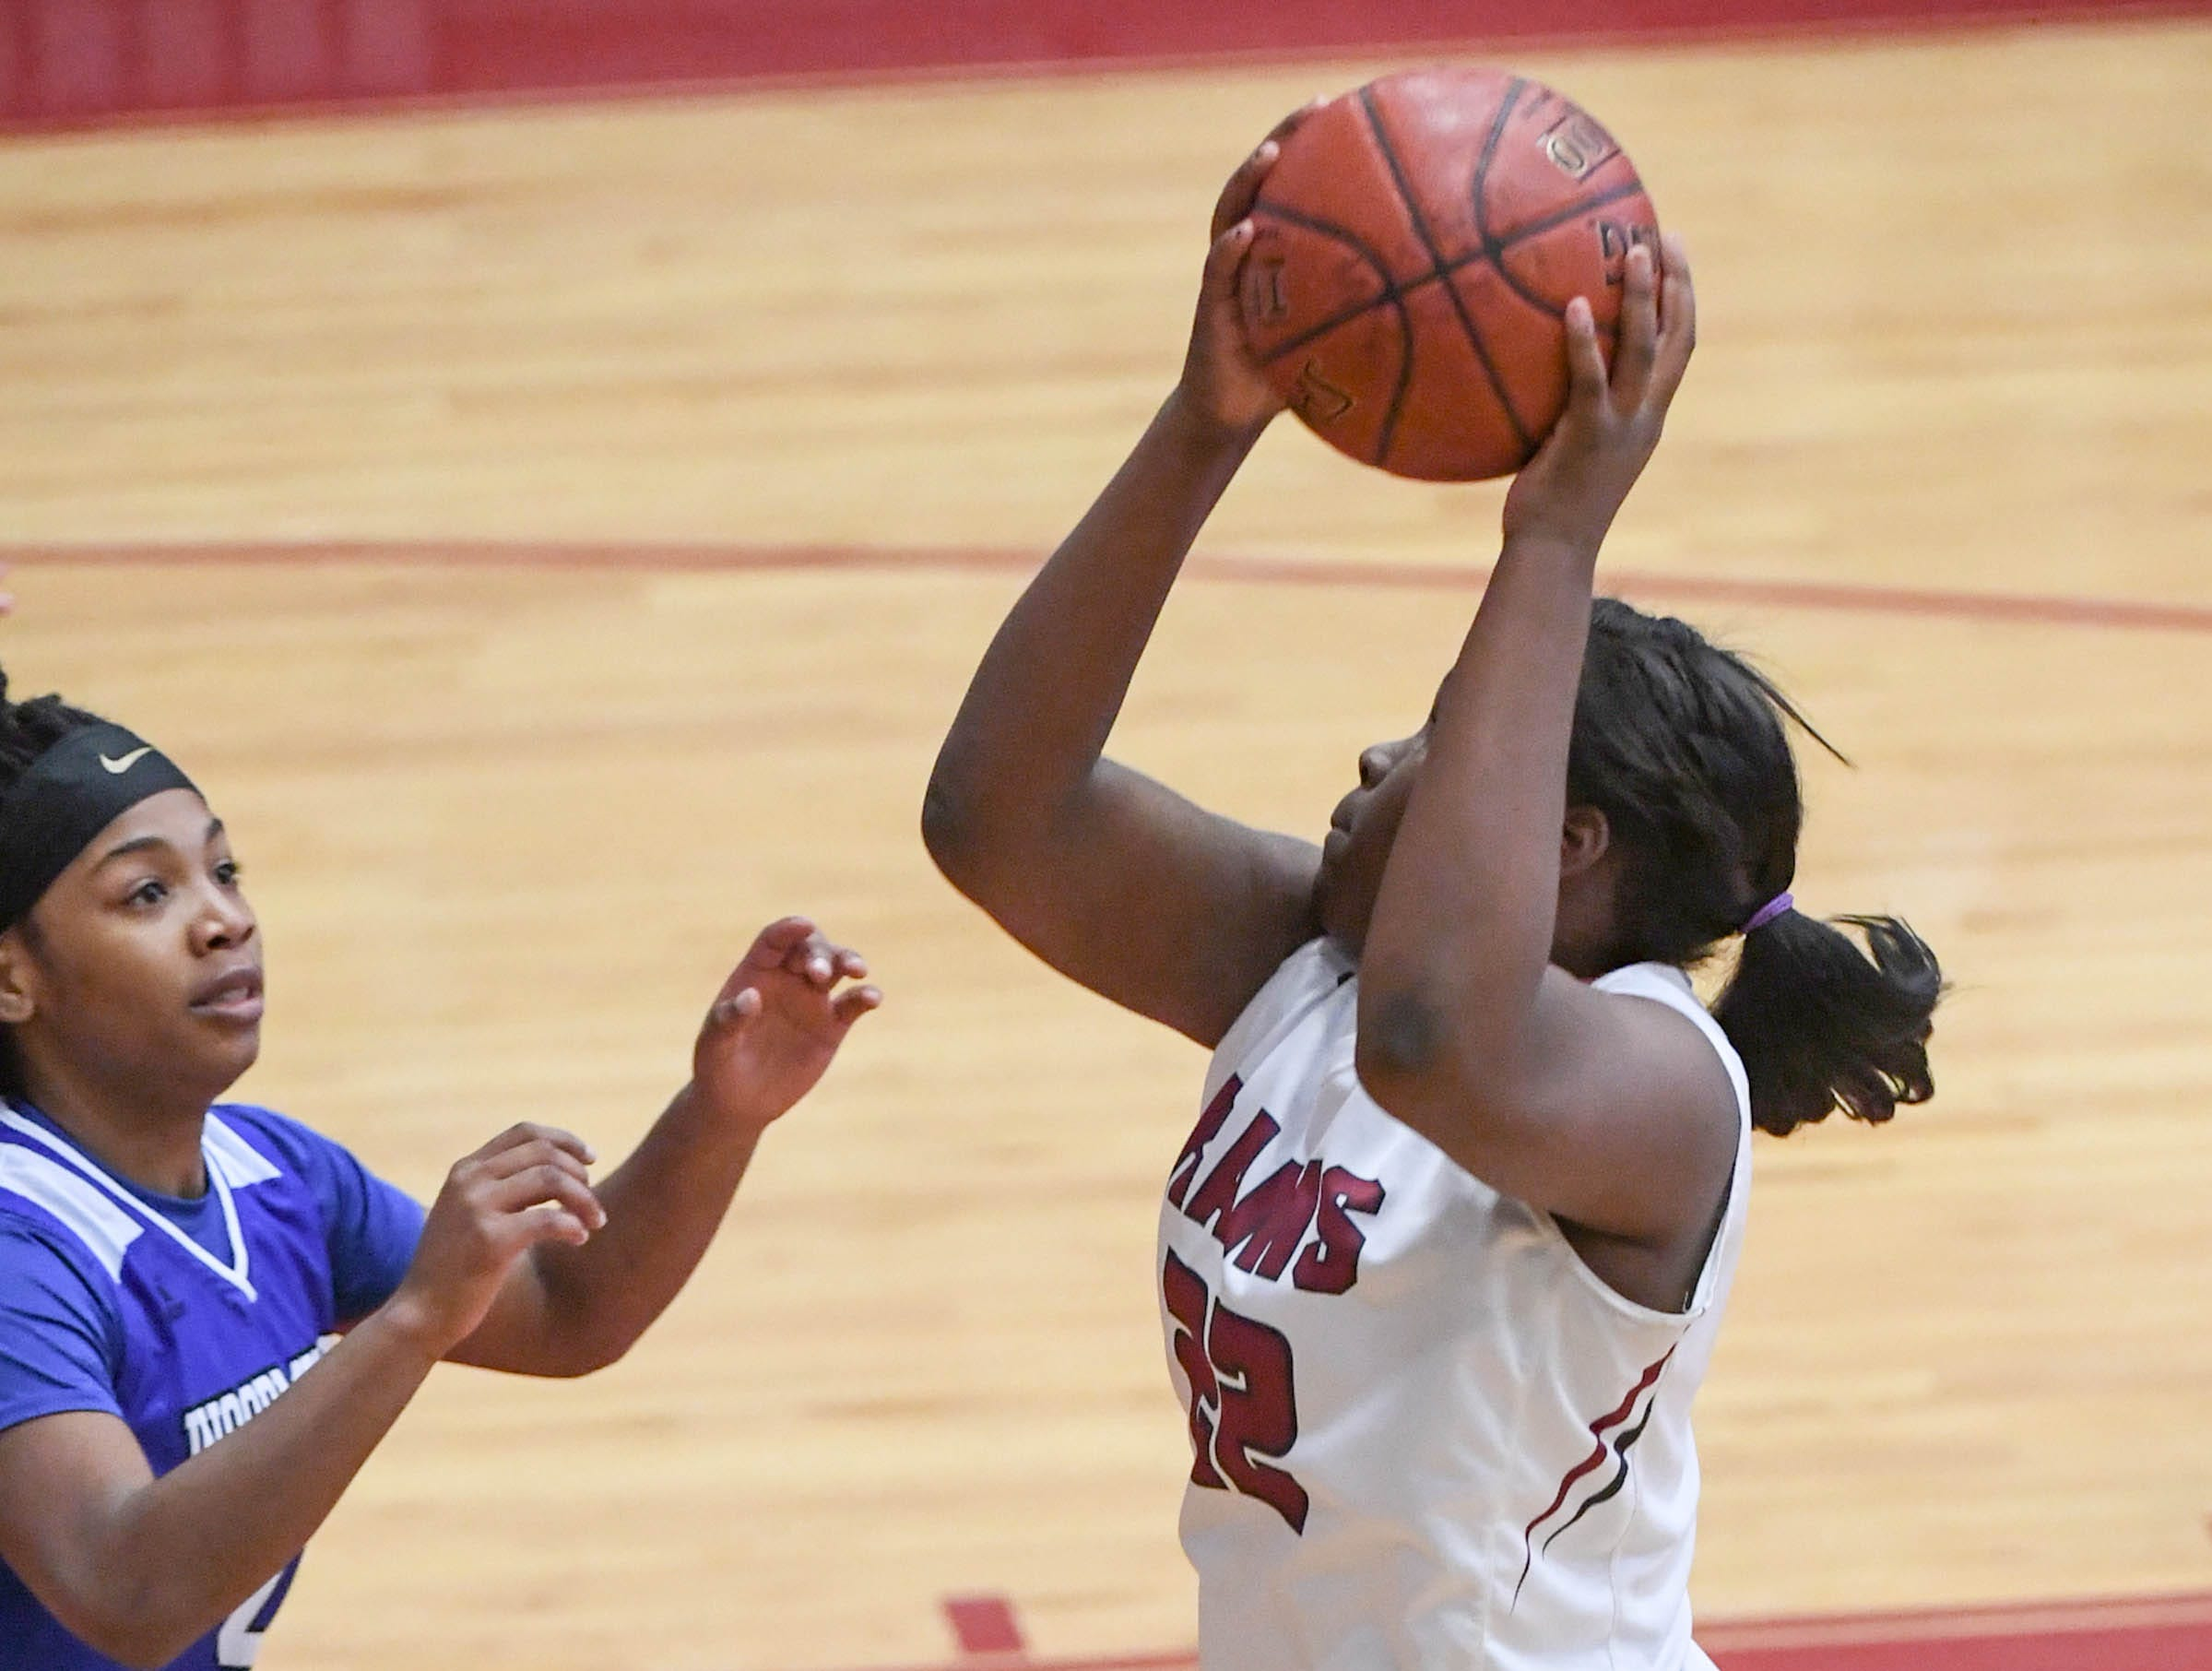 Westside sophomore Chyna Dixon(22) shoots near Woodmont junior Jordan Hagood(4) during the first quarter at Westside High School in Anderson on Tuesday.